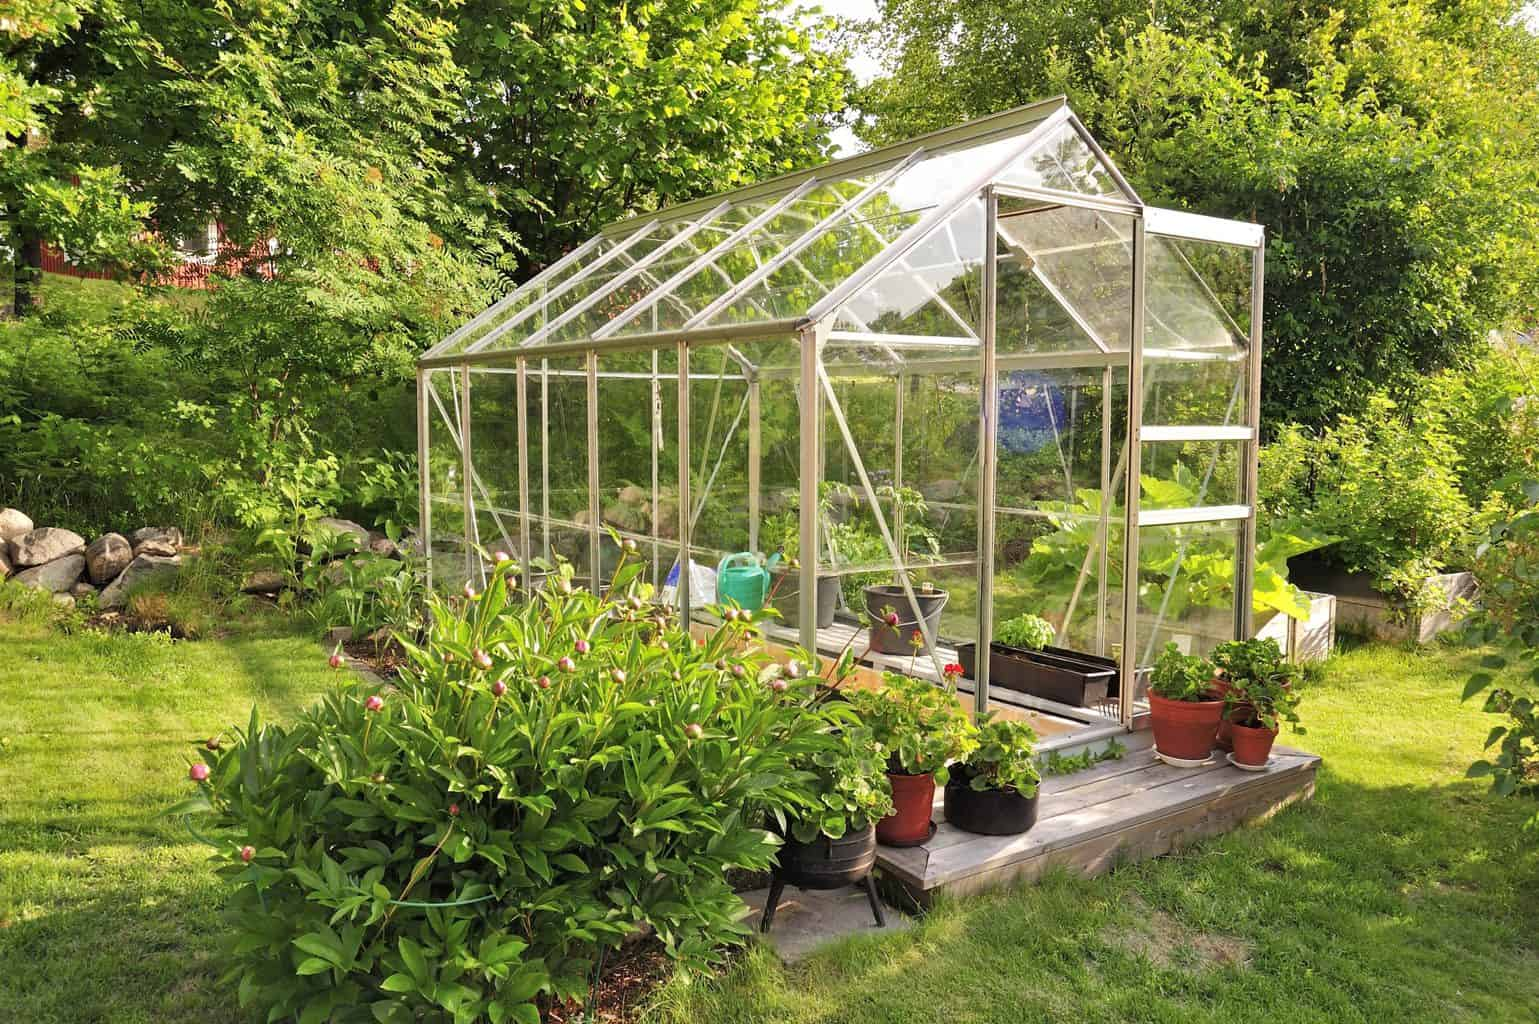 How To Keep Your Greenhouse Cool in the Summer